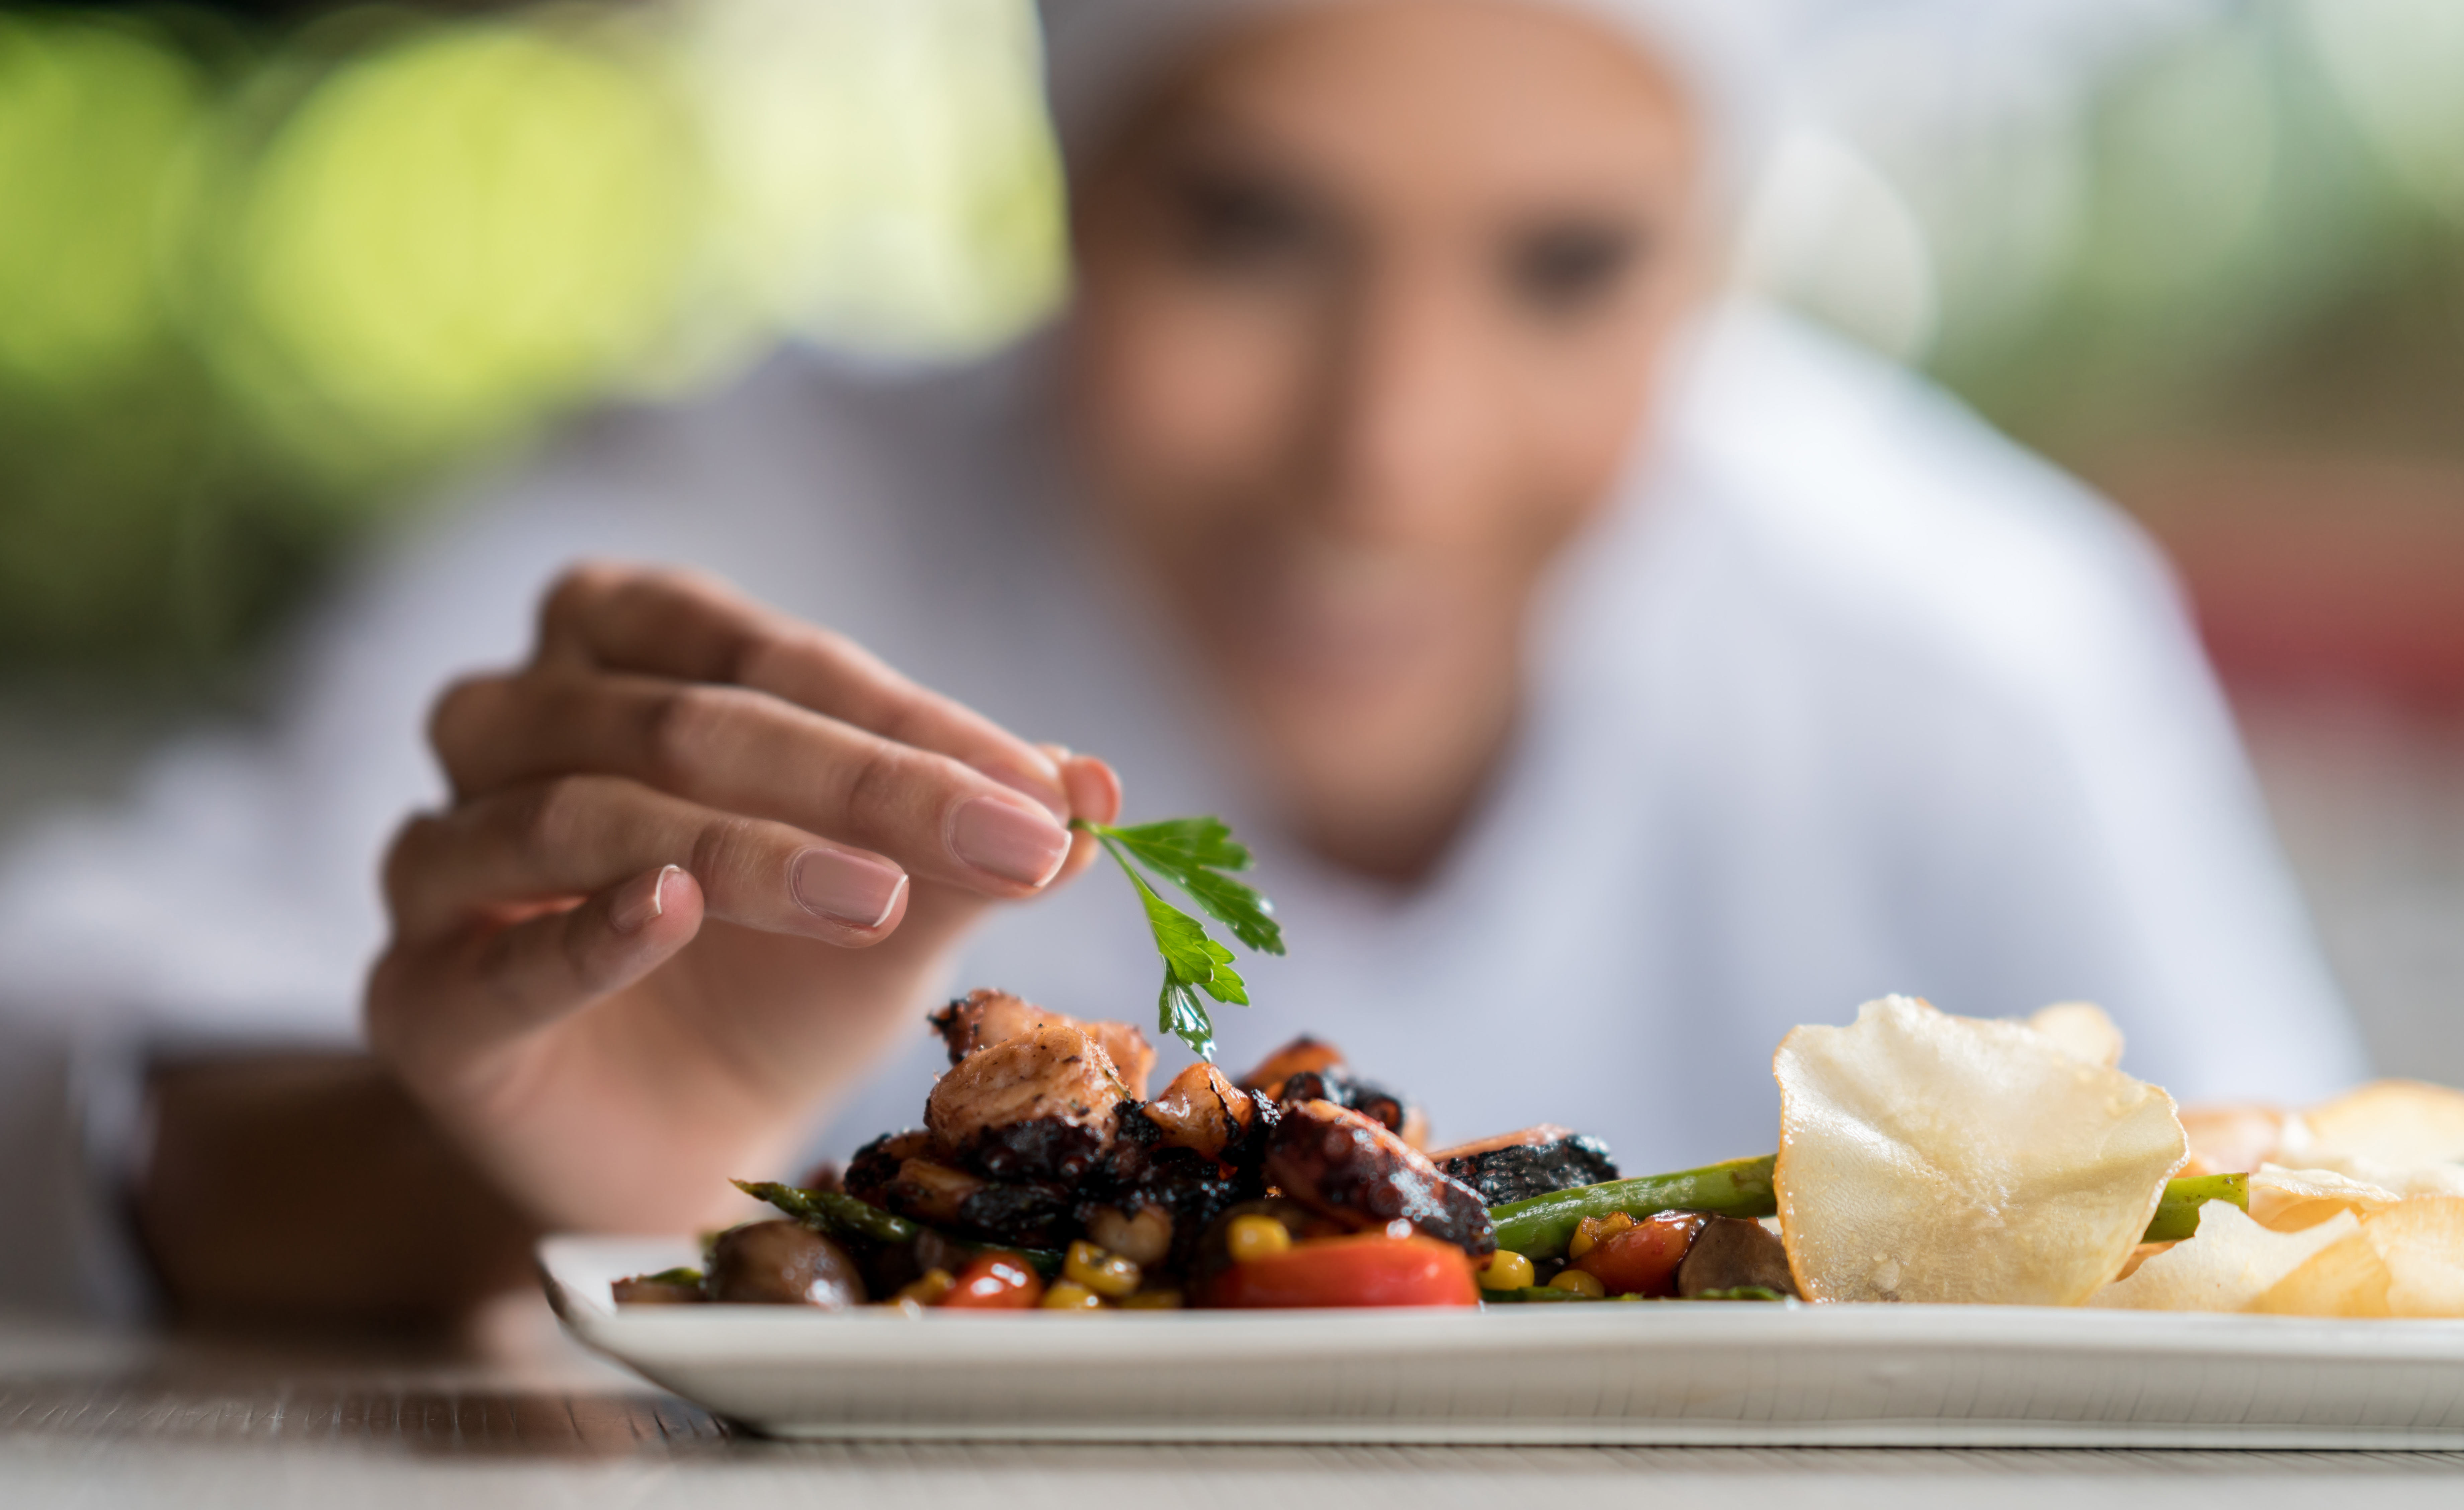 How to Handle Customer Complaints in the Food Service